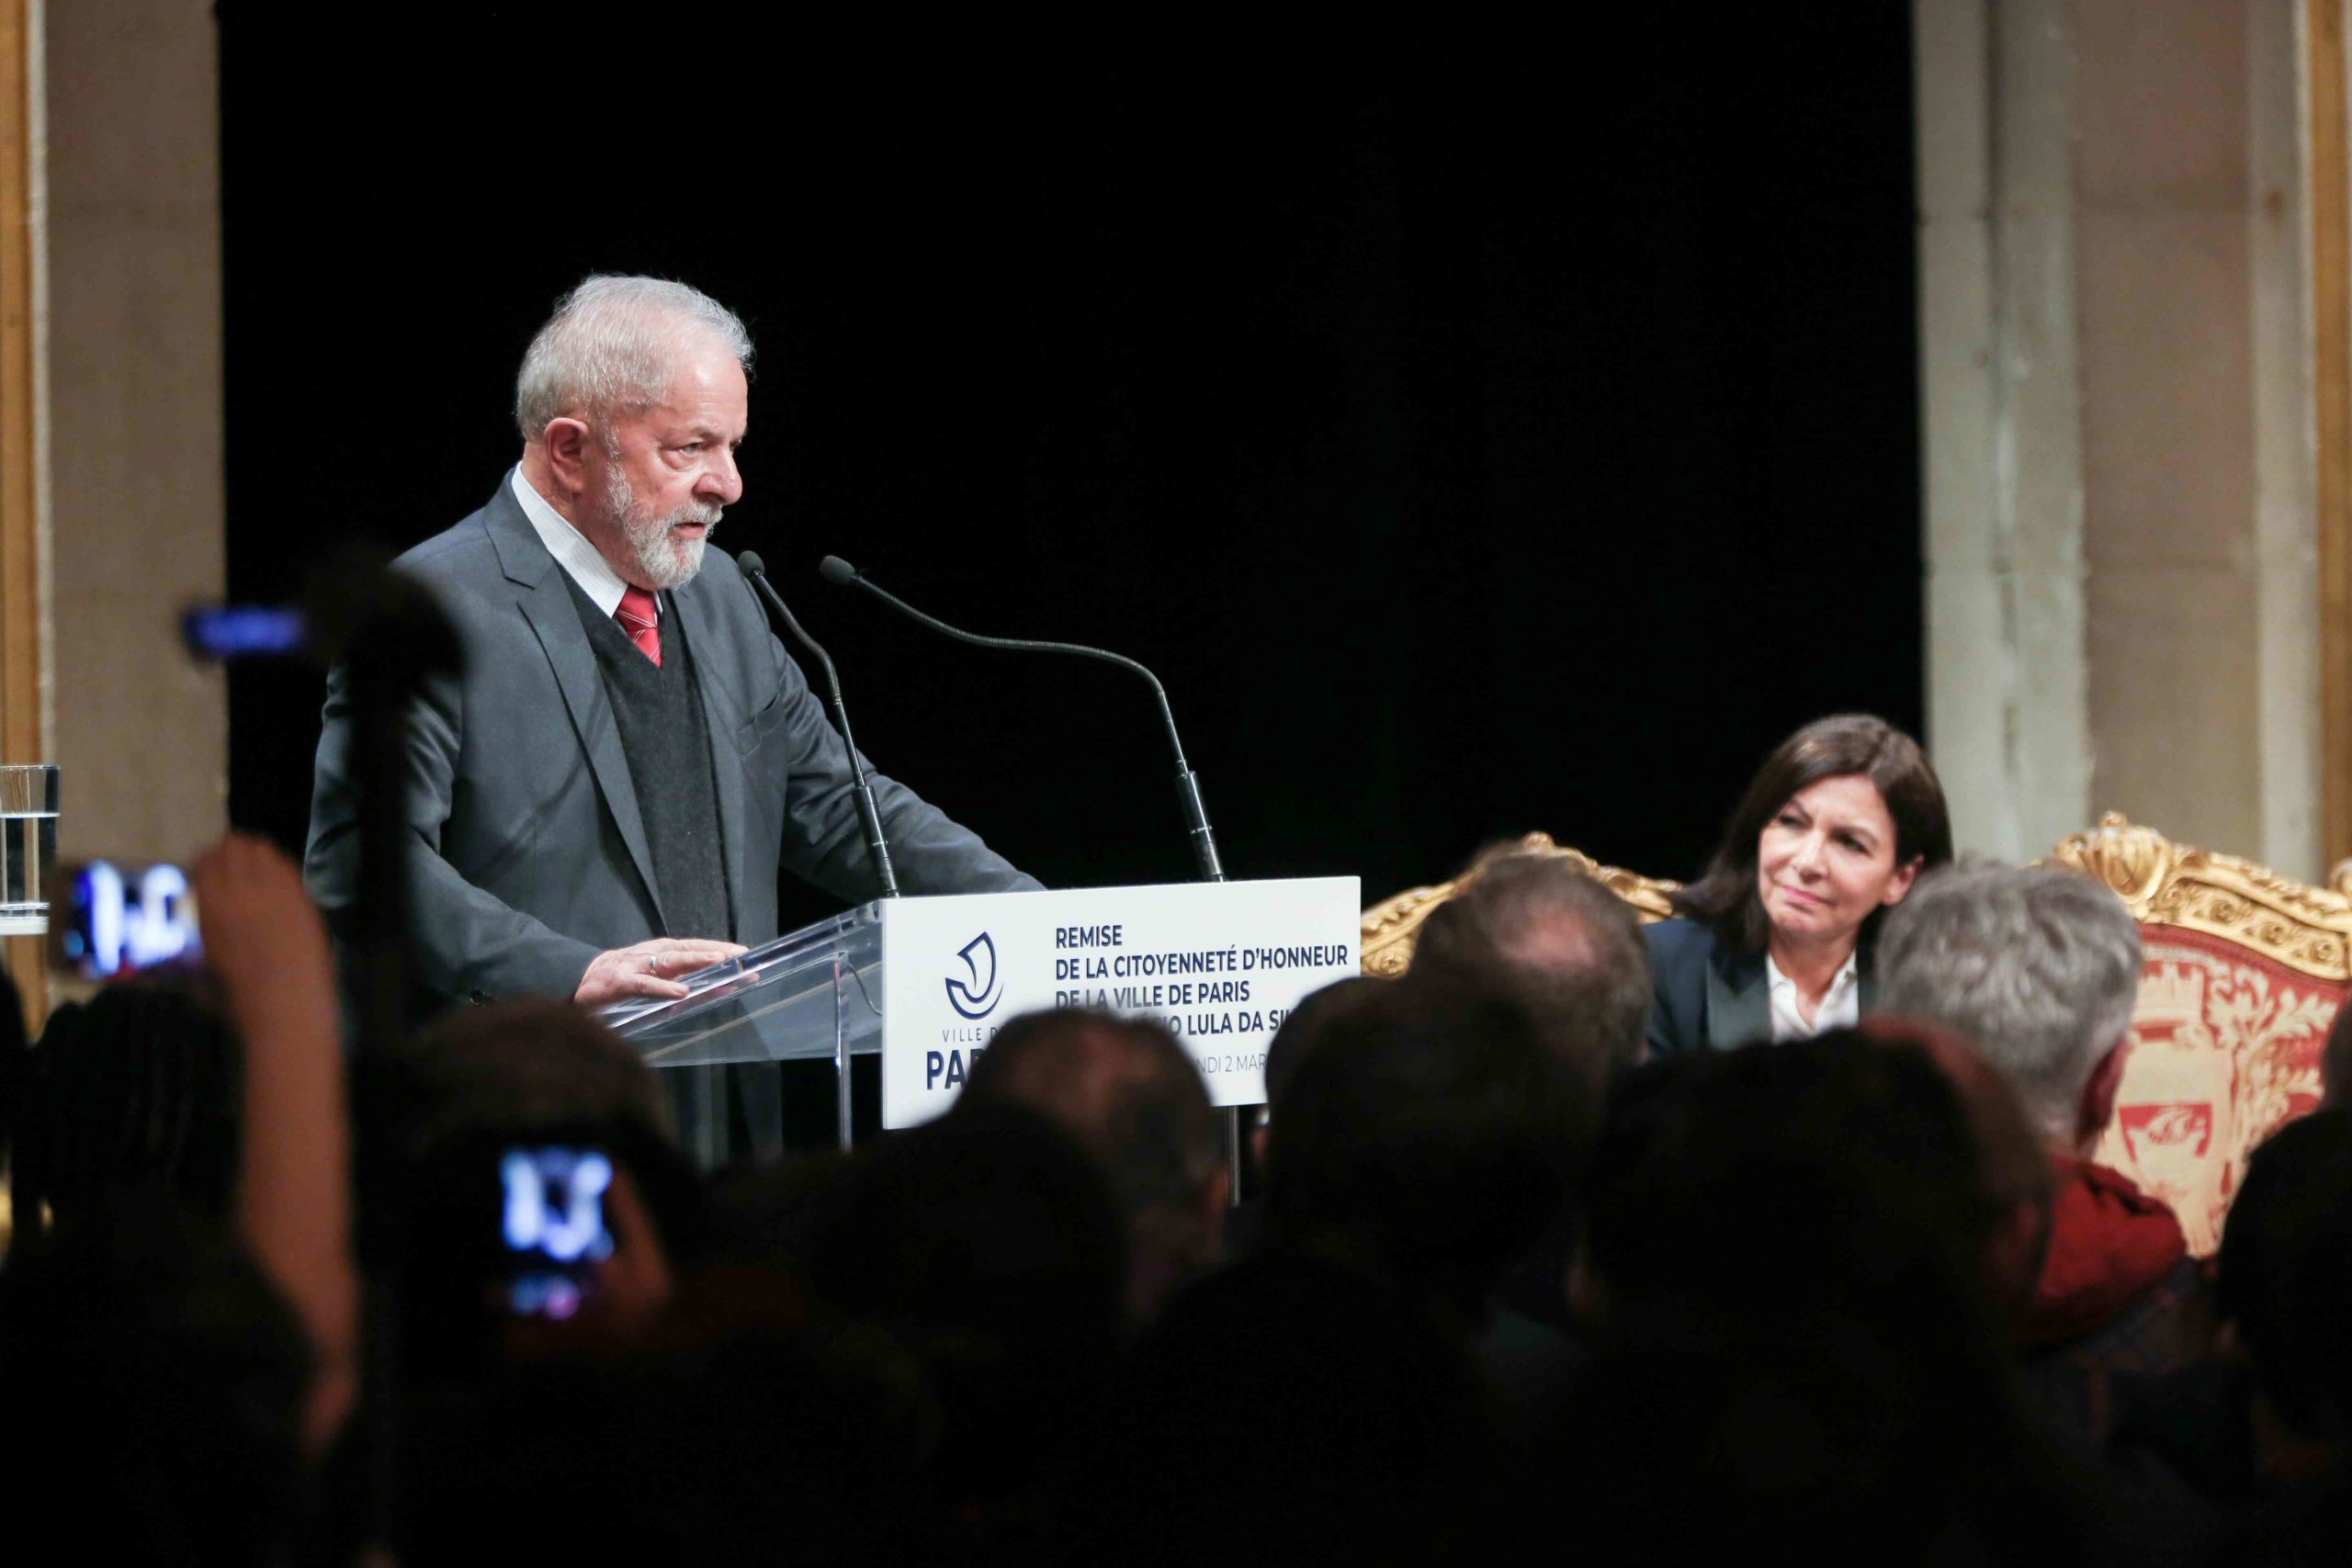 Former Brazilian president Luiz Inacio Lula da Silva (L), flanked by Paris Mayor and candidate for re-election Anne Hidalgo (R)  speaks during a ceremony at the City Hall of Paris, on March 2, 2020, during wich he was named  honorary citizen of the city of